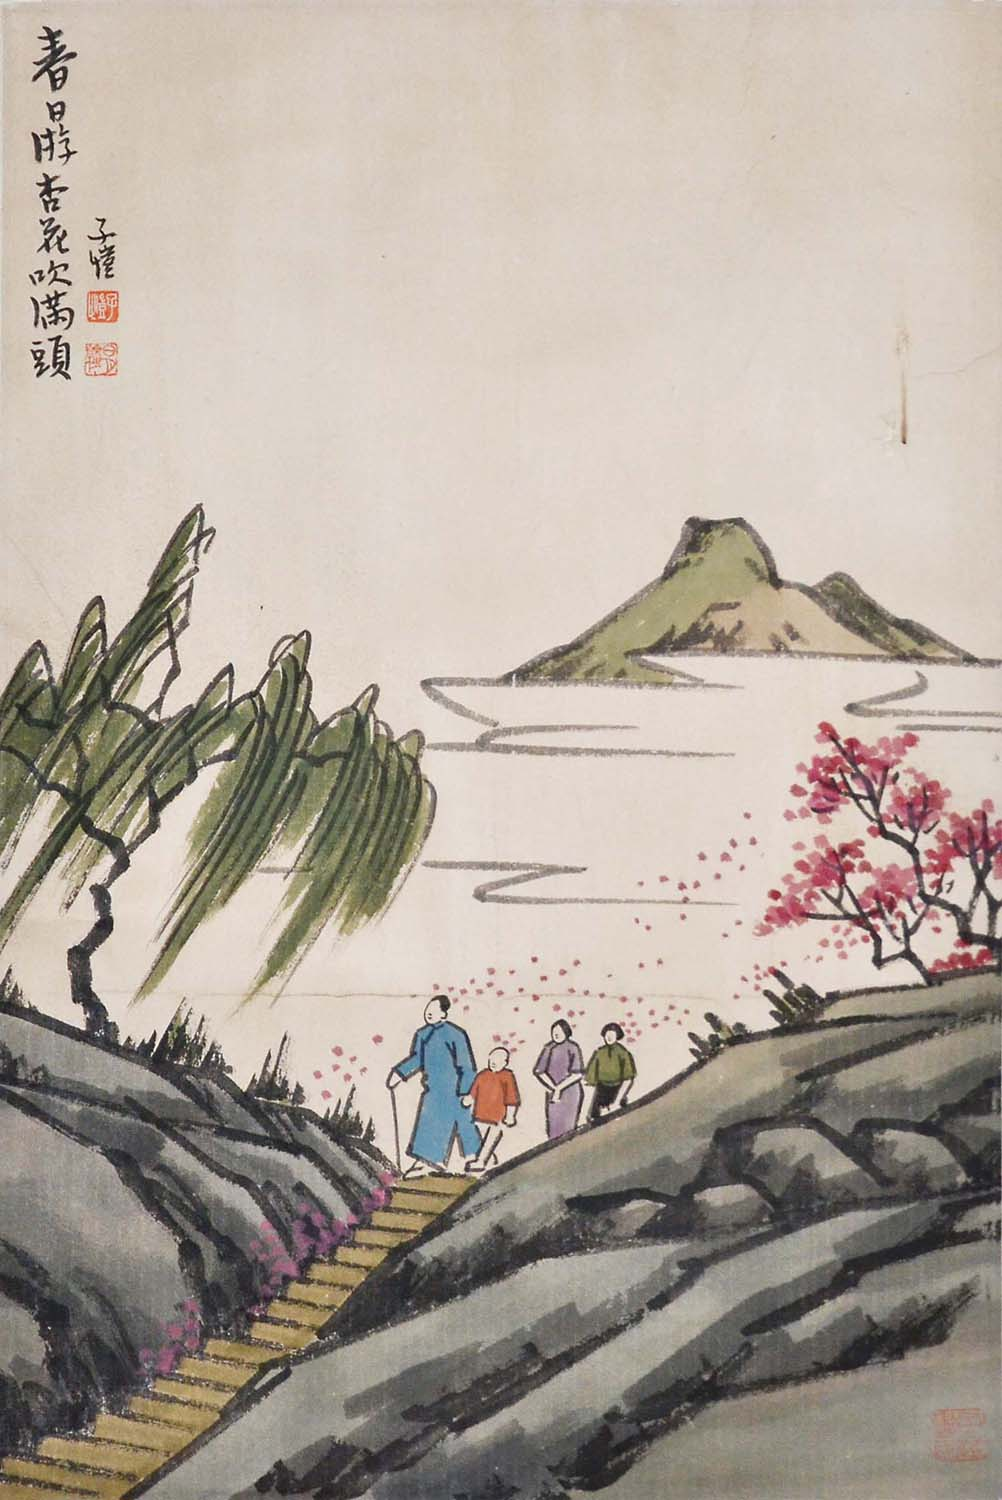 """Lot 34 - """"???(1898 - 1975)?????????????:????????????:(??)(???)(????)Feng ZikaiSpring OutingHanging Scroll,Ink"""